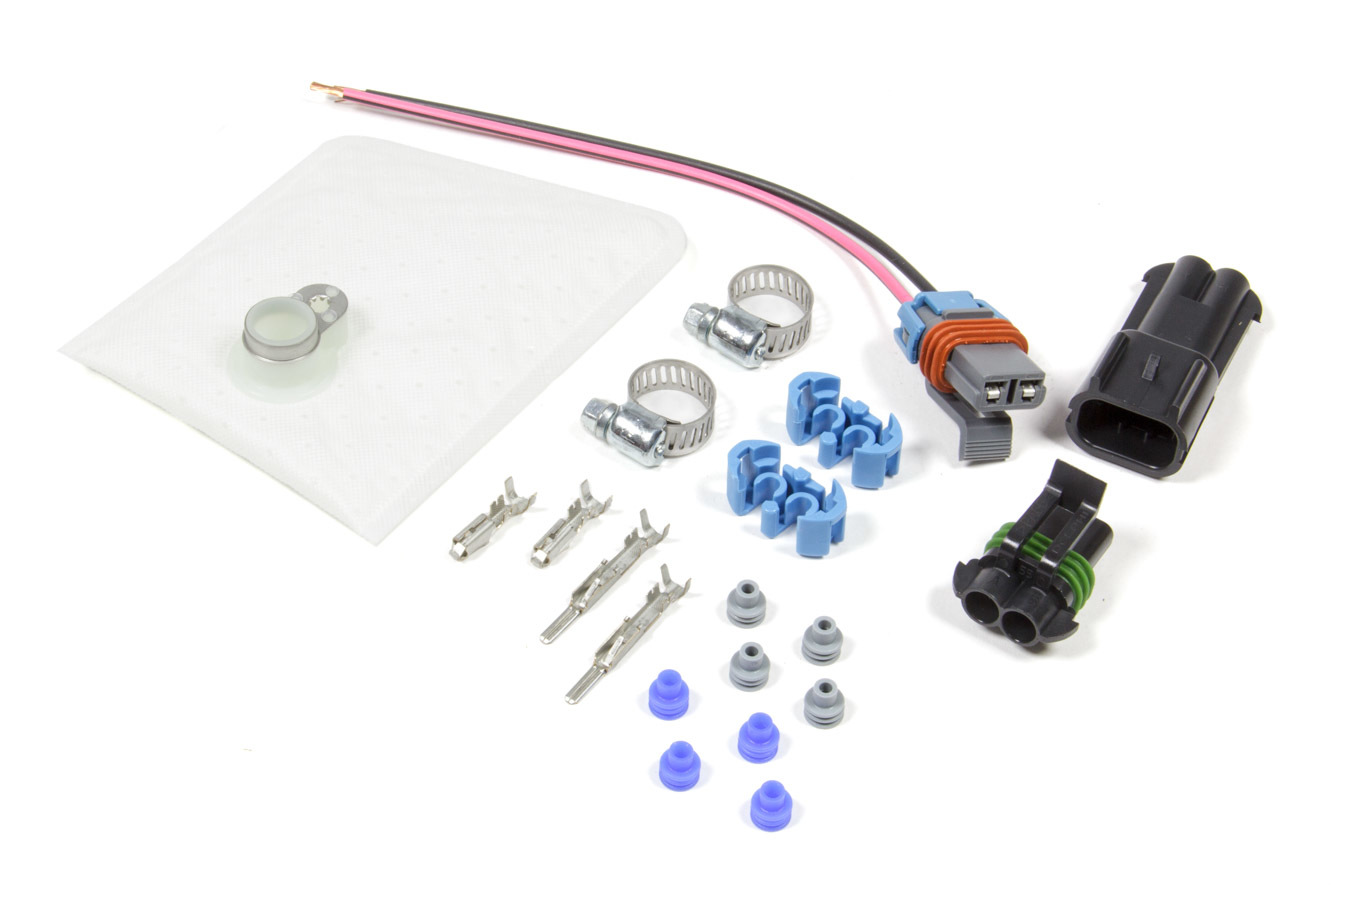 Walbro 450 LPH E85 Compatible Fuel Pump Wiring Harness, Filter, Clamp Kit for C6 Corvette